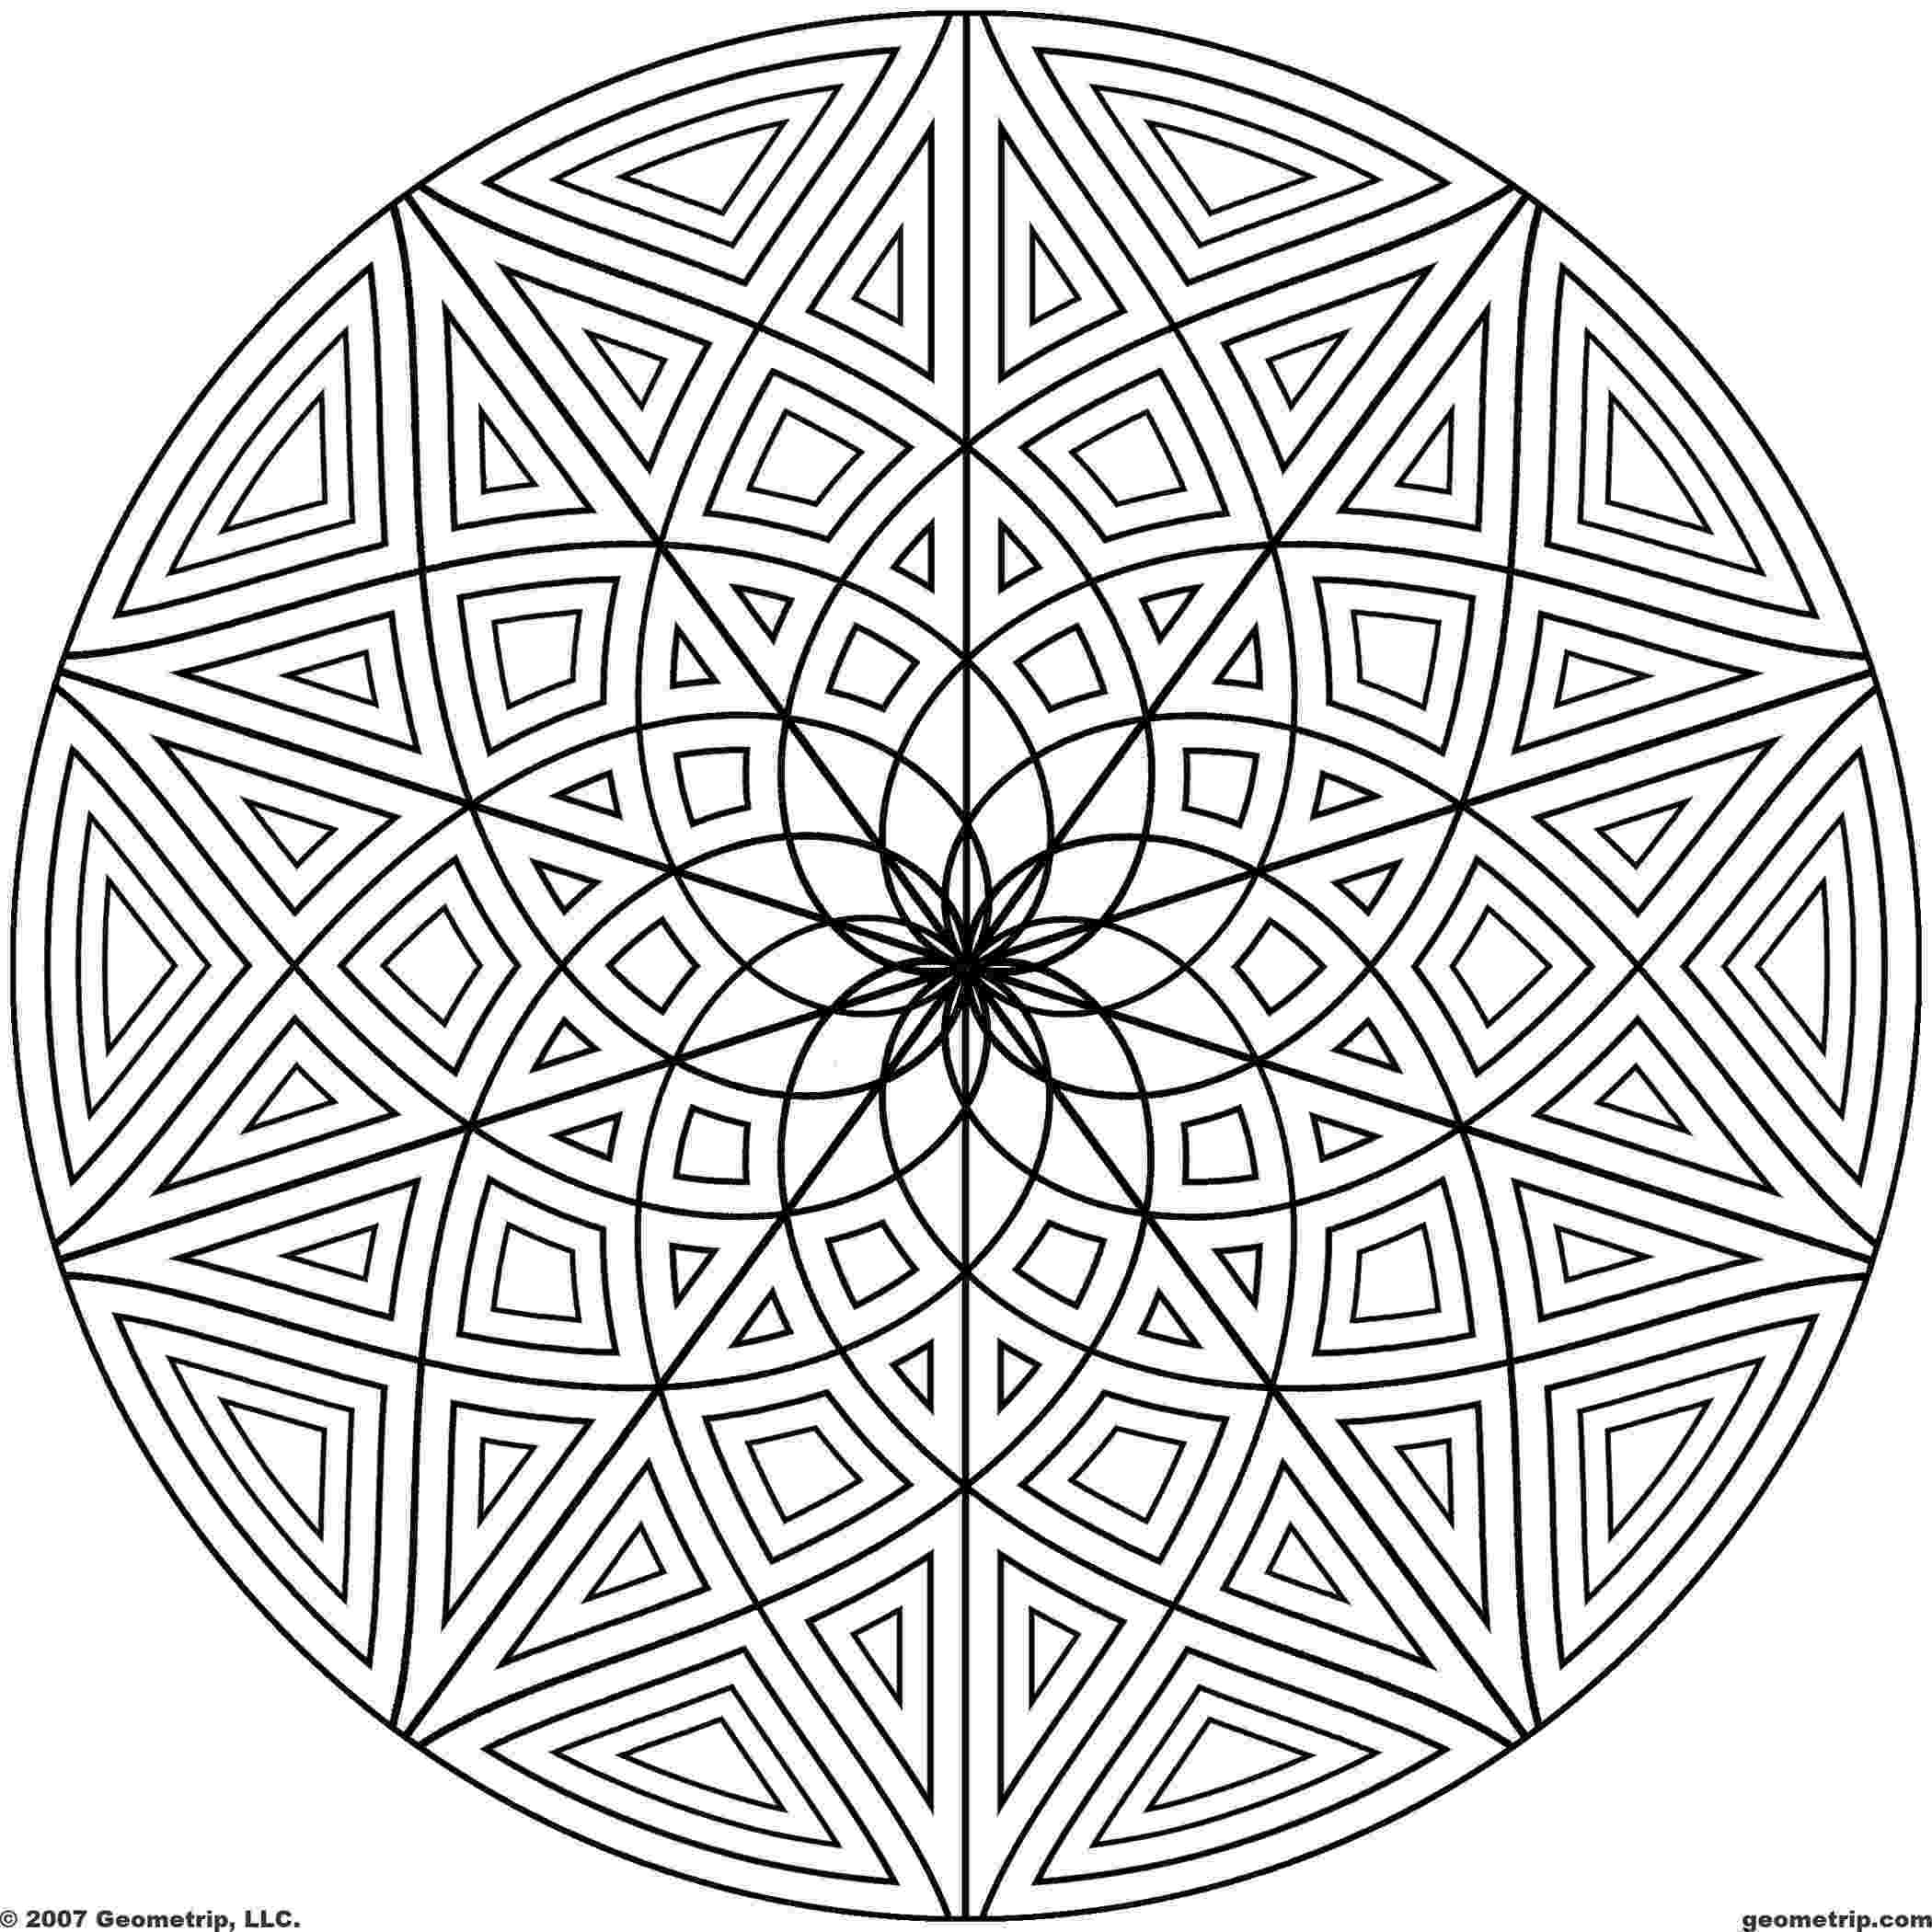 coloring pages for adults patterns calming patterns for adults who color live your life in patterns pages for adults coloring